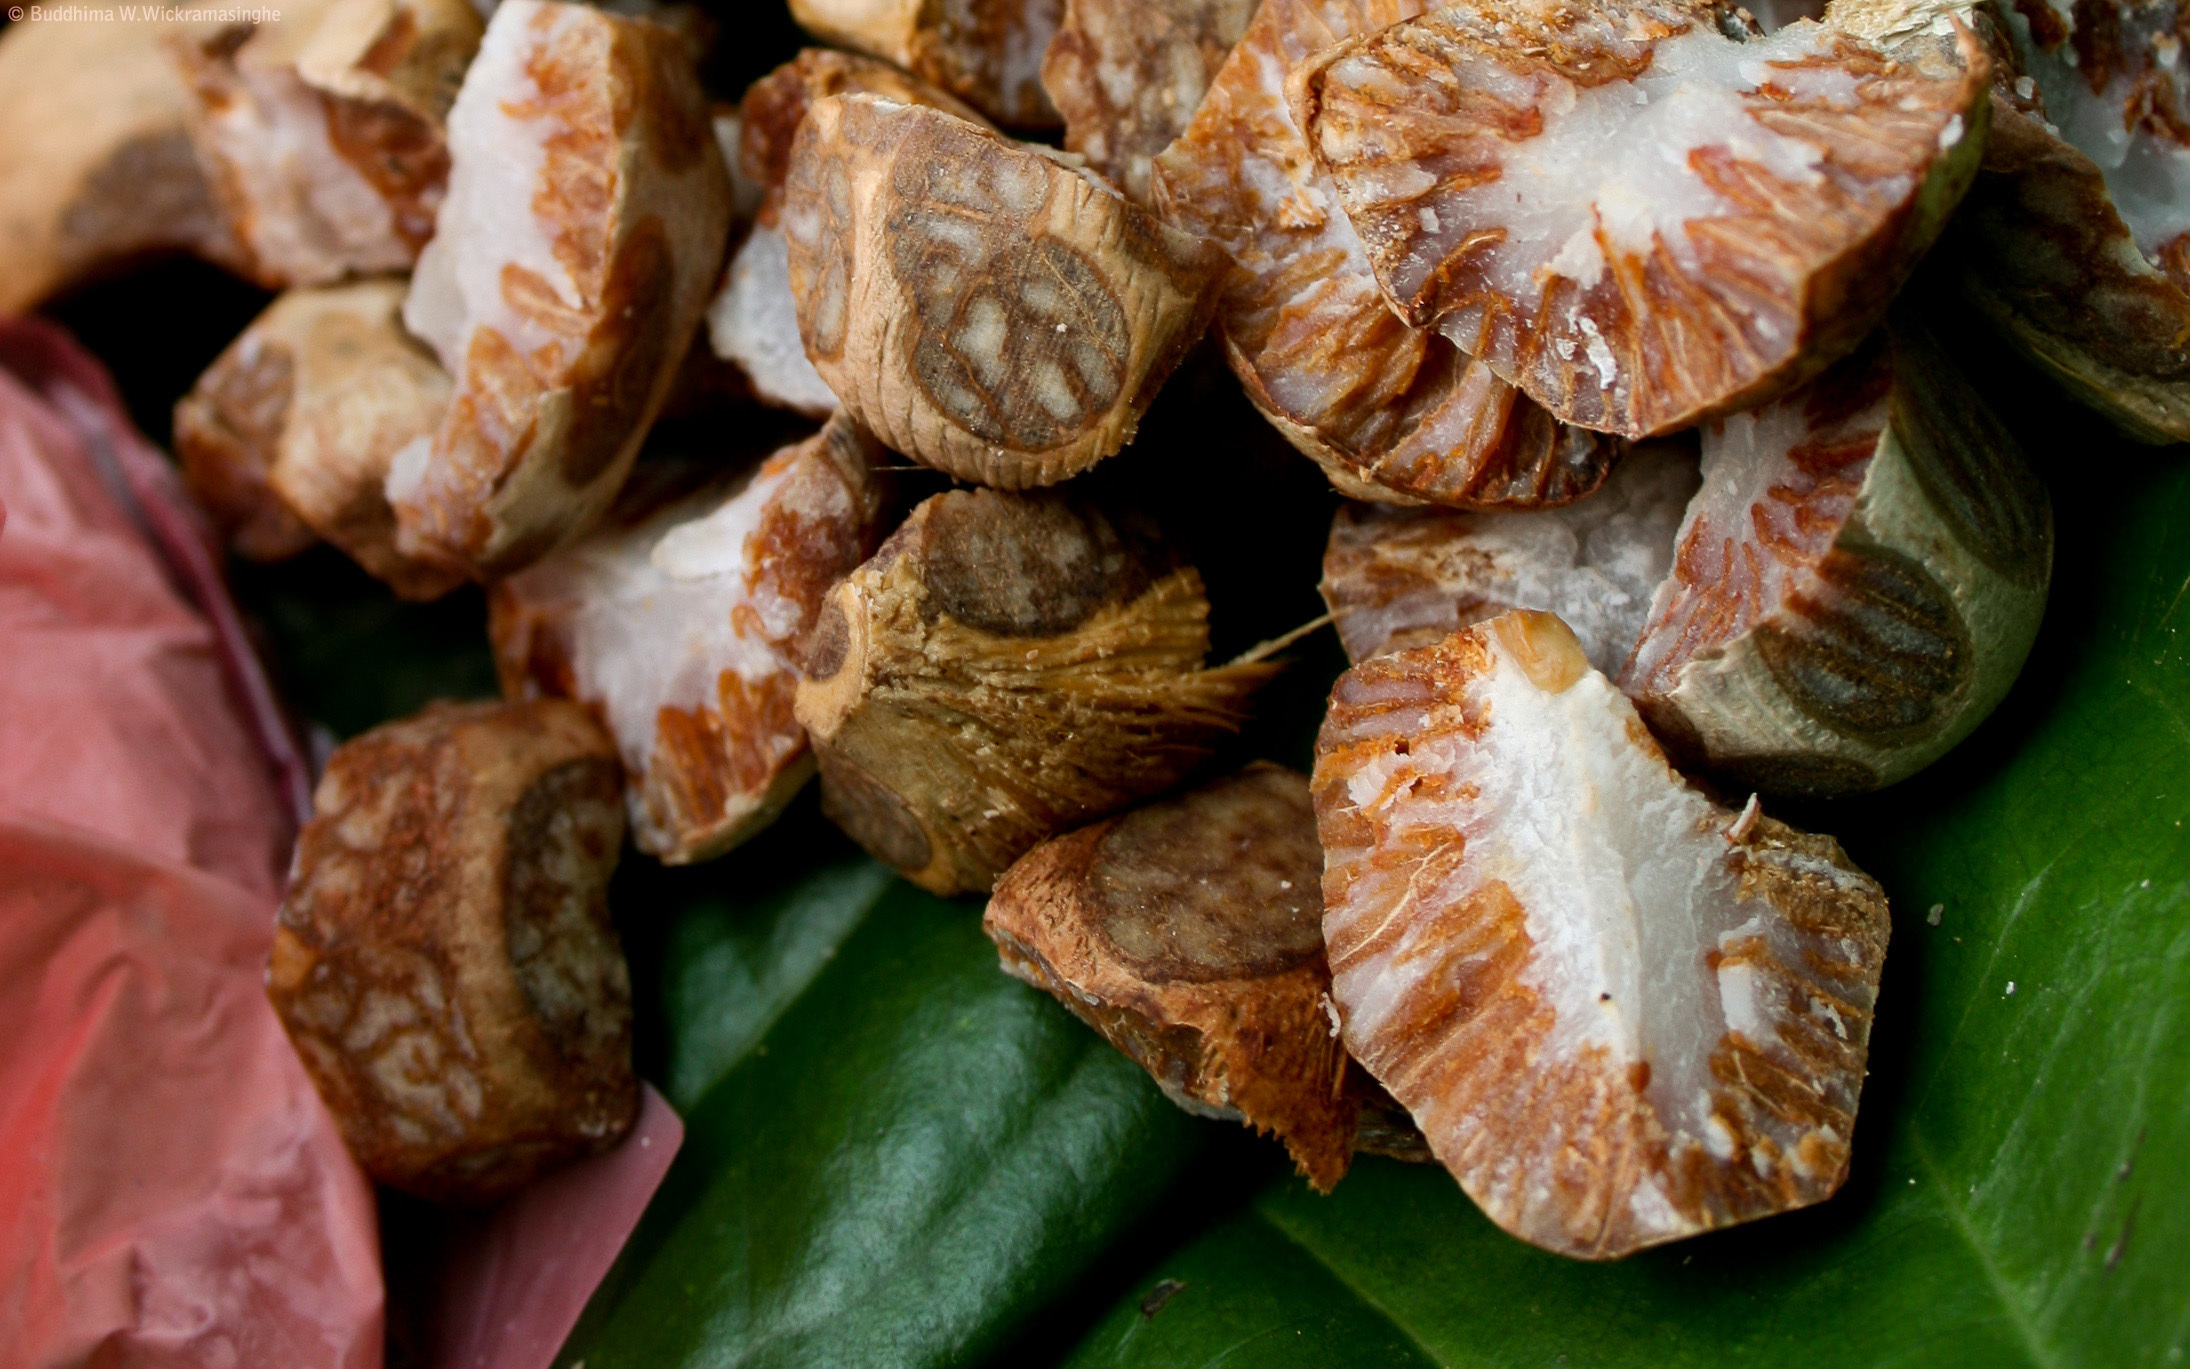 The Addictive Areca Nut Could Hold Key to Quitting Smoking